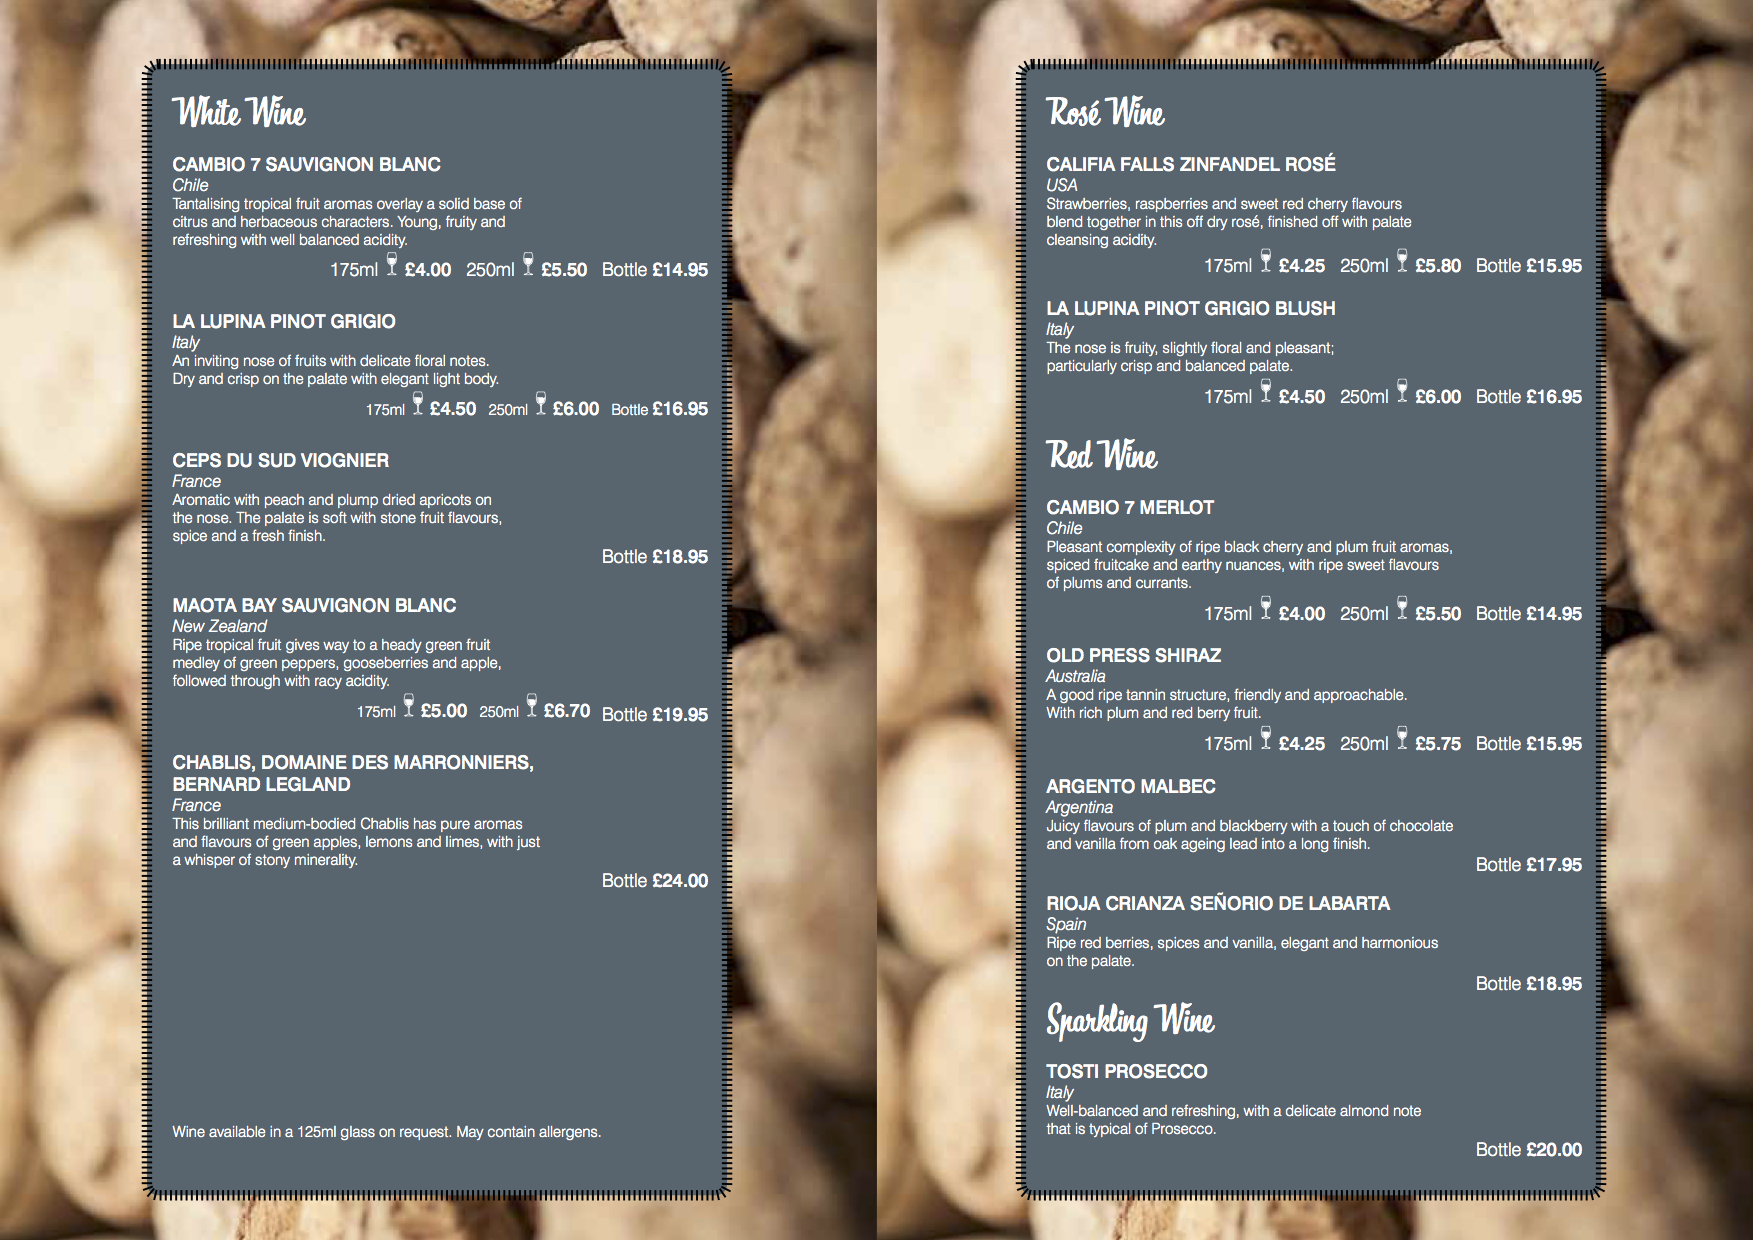 Dell Cafe drinks and wine menu 2